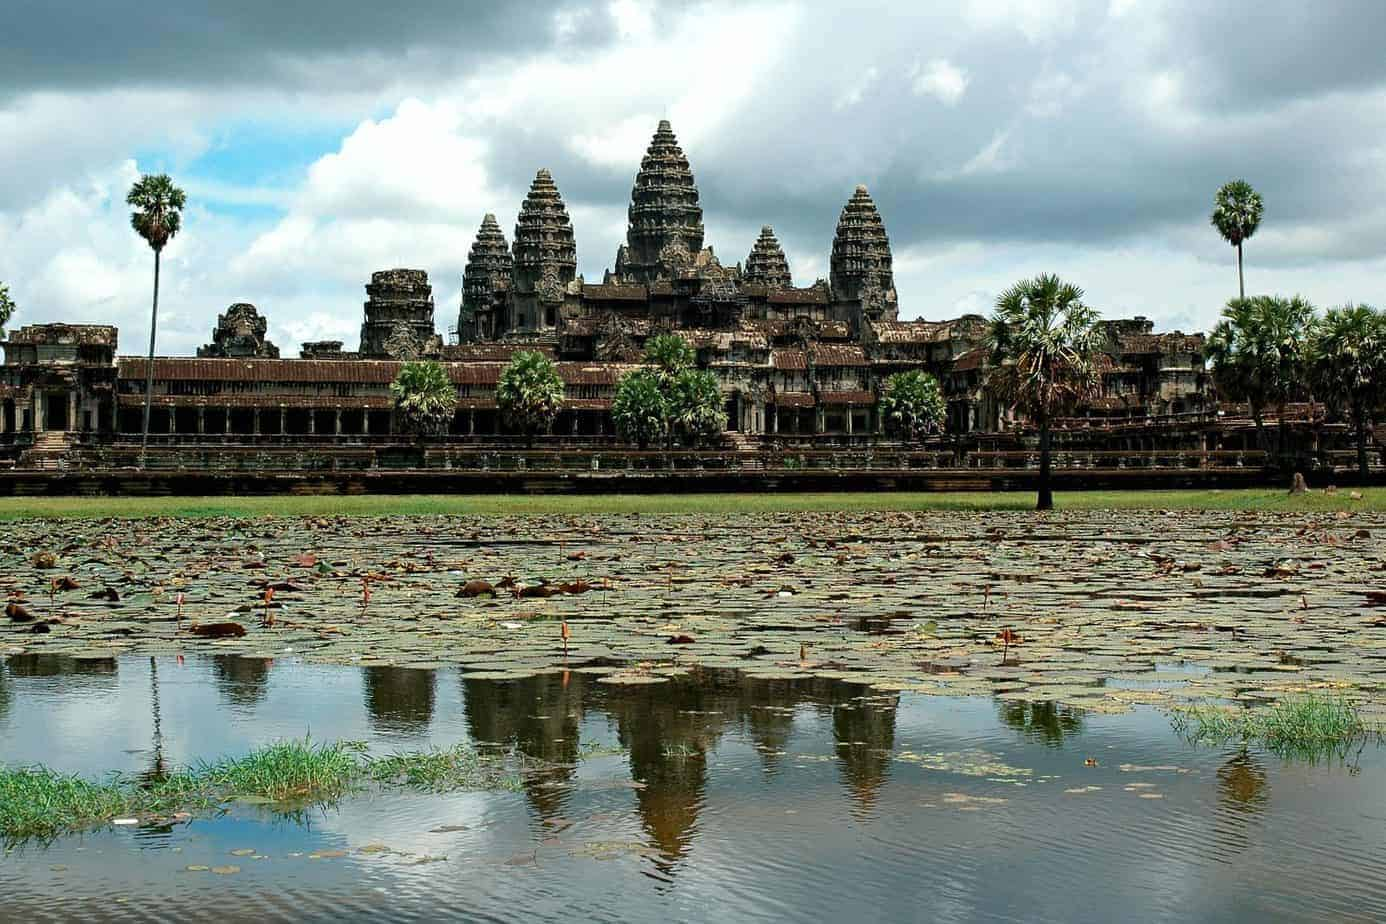 Angkor Wat, Cambodia, the largest religious monument in the world.